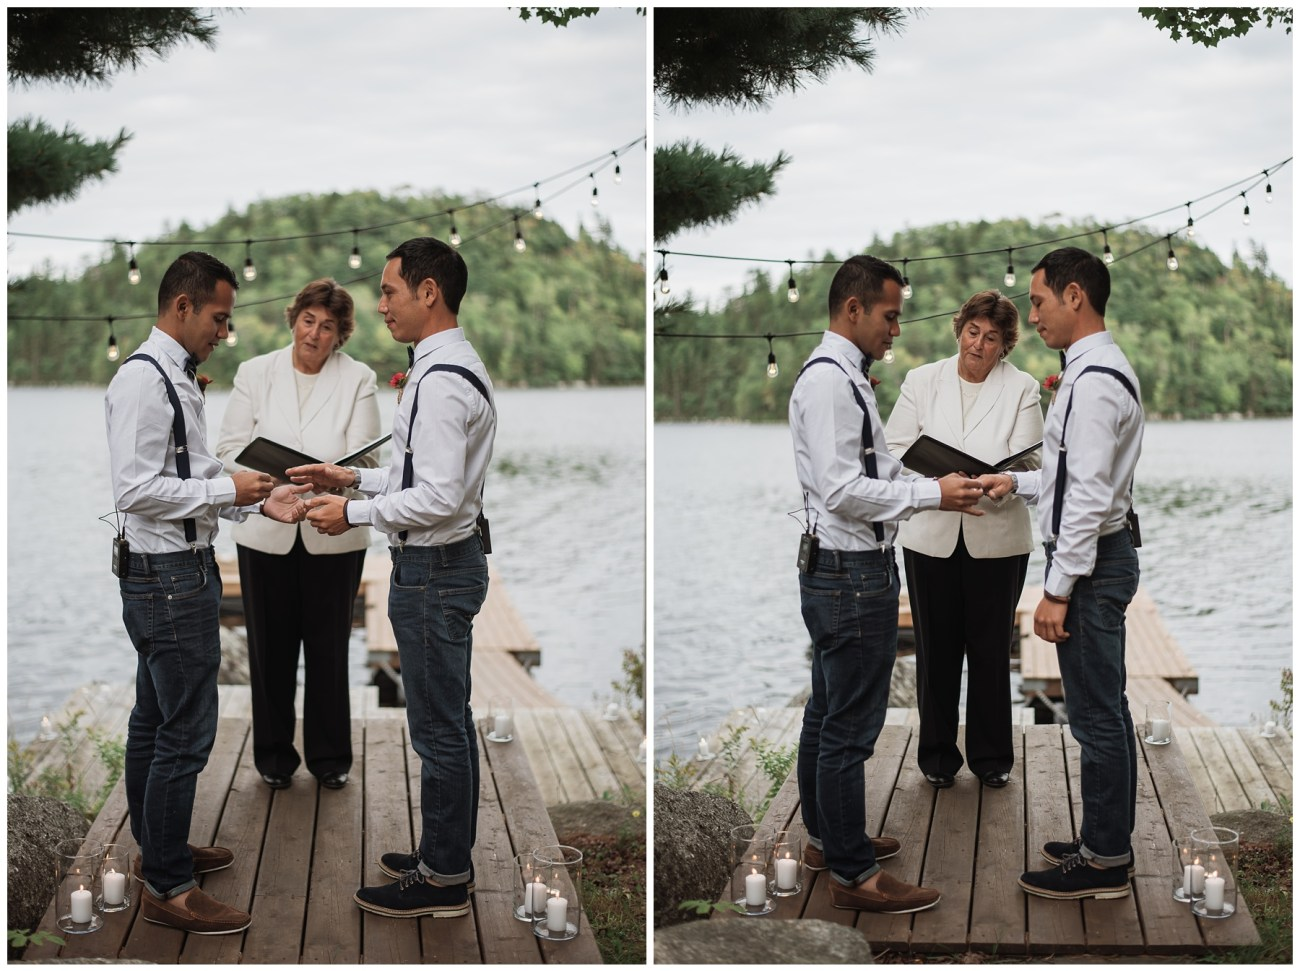 ceremony at a backyard wedding in Porters Lake, Nova Scotia